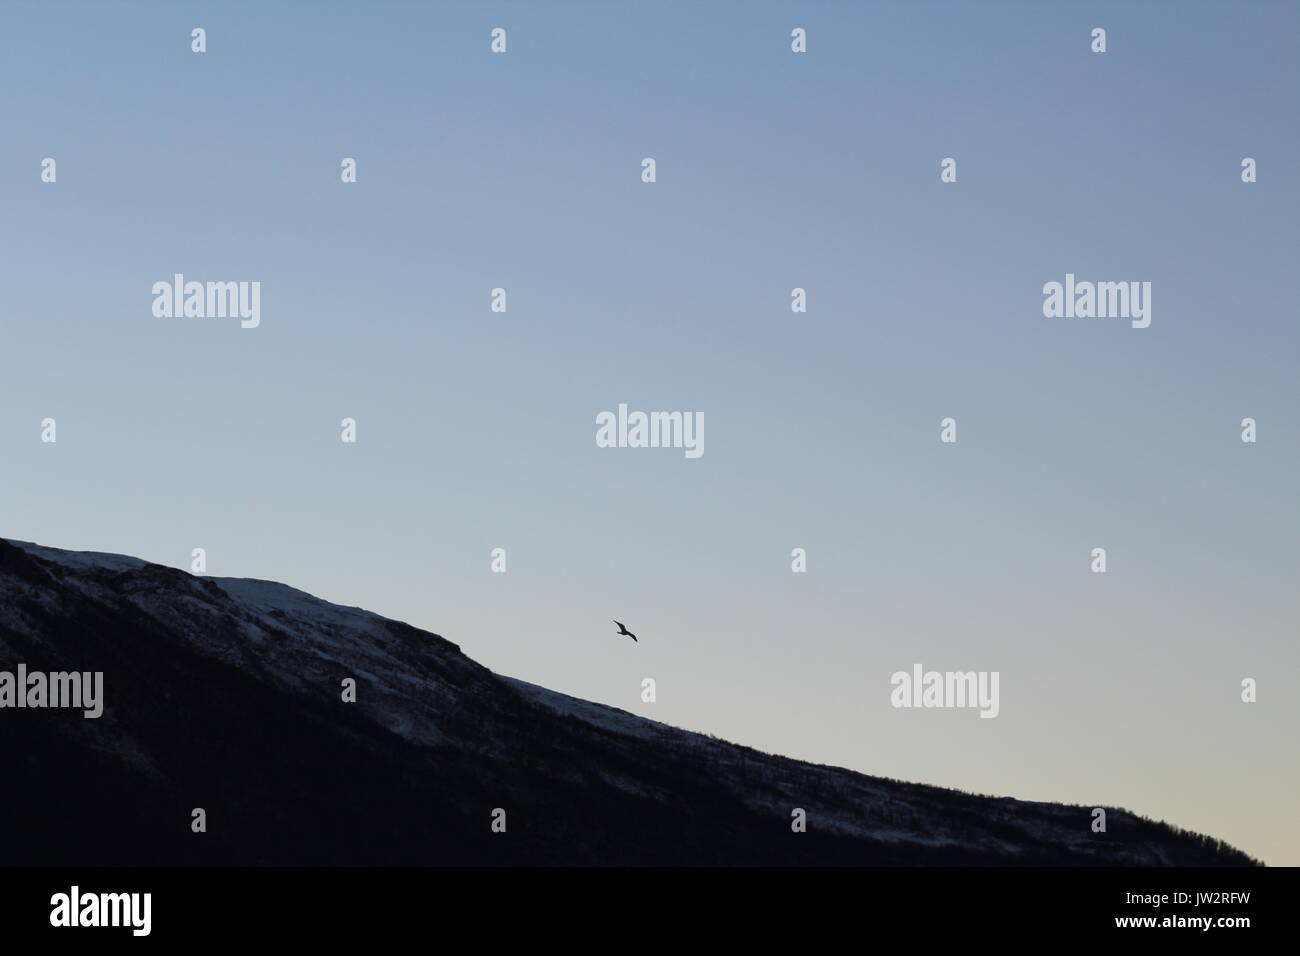 Bird flying over a mountain in clear blue sky - Stock Image